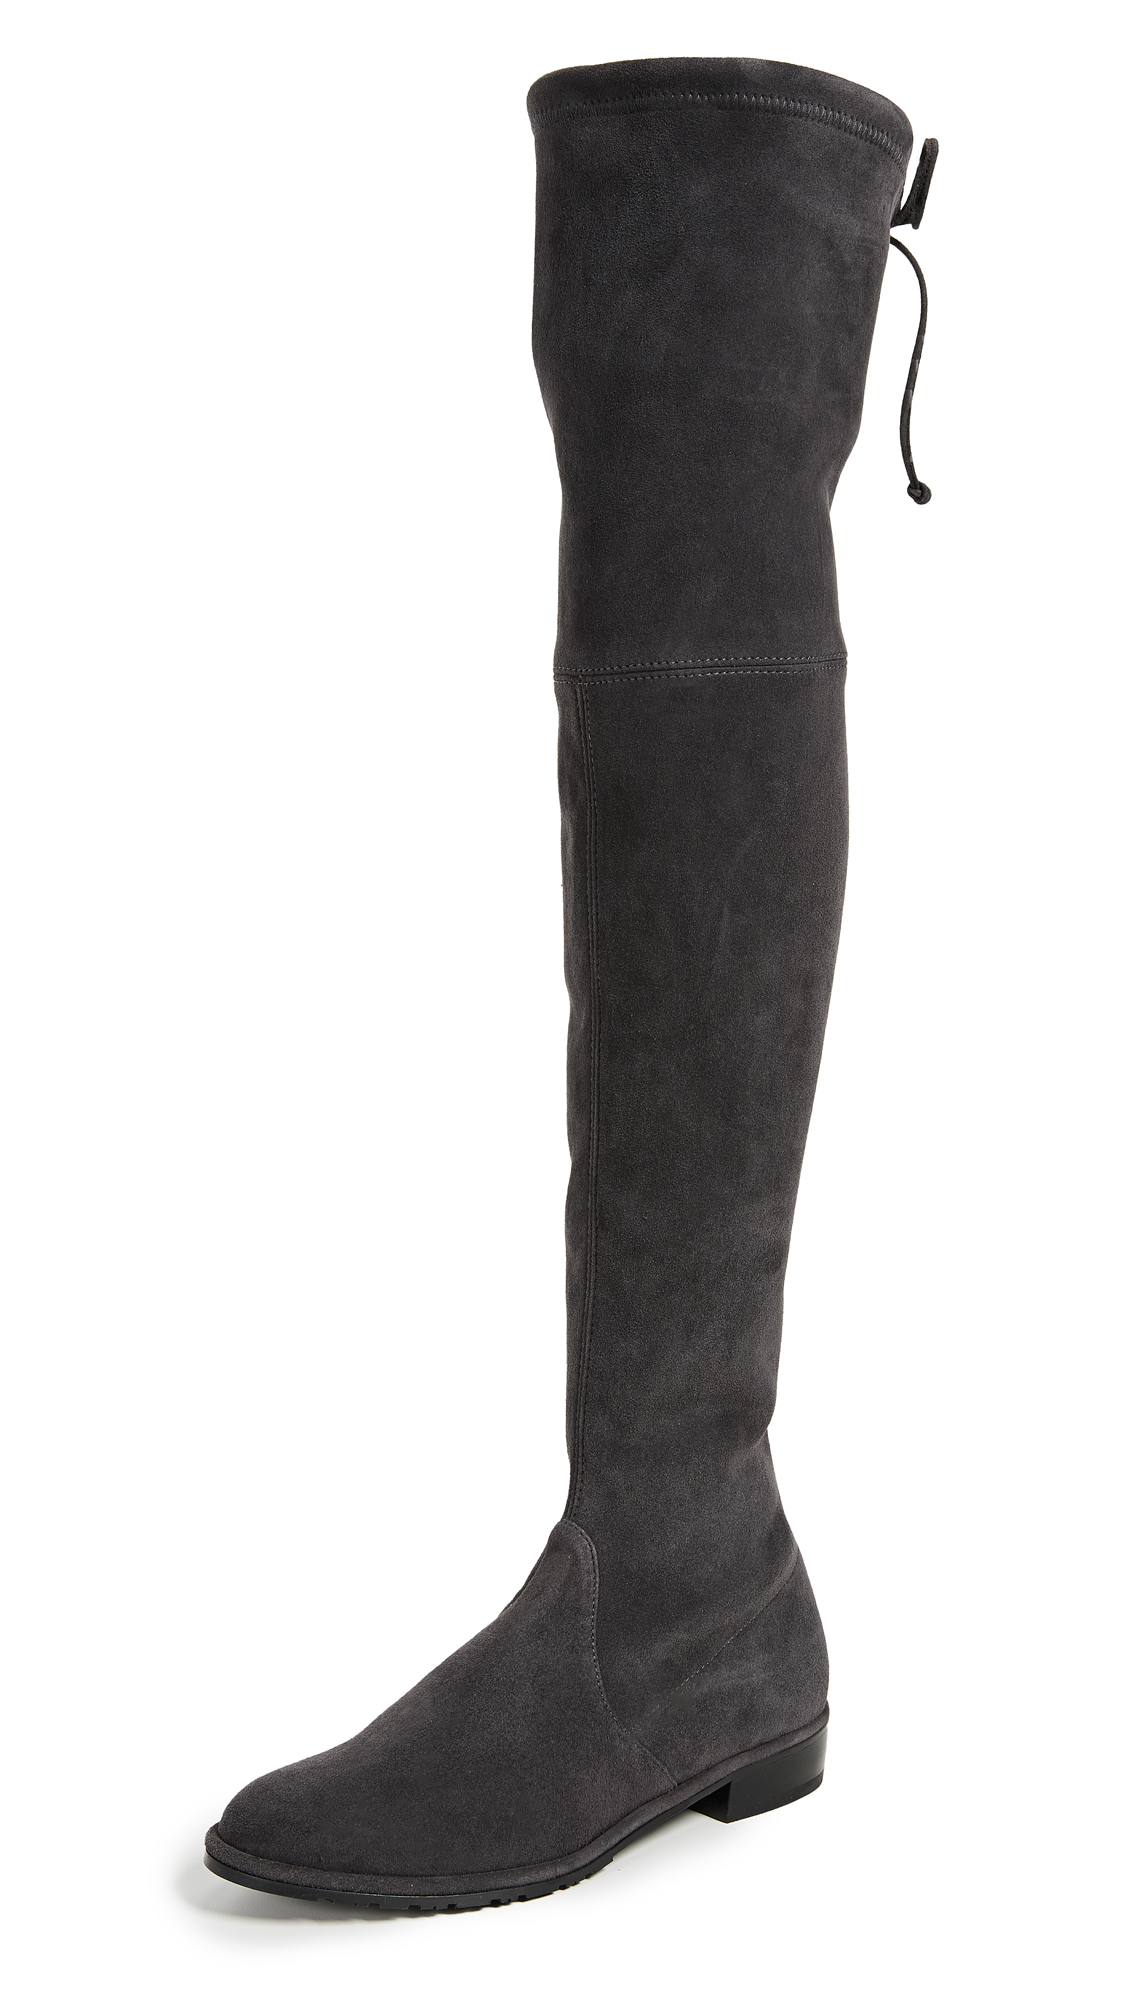 Stuart Weitzman Lowland Over the Knee Boots - Asphalt